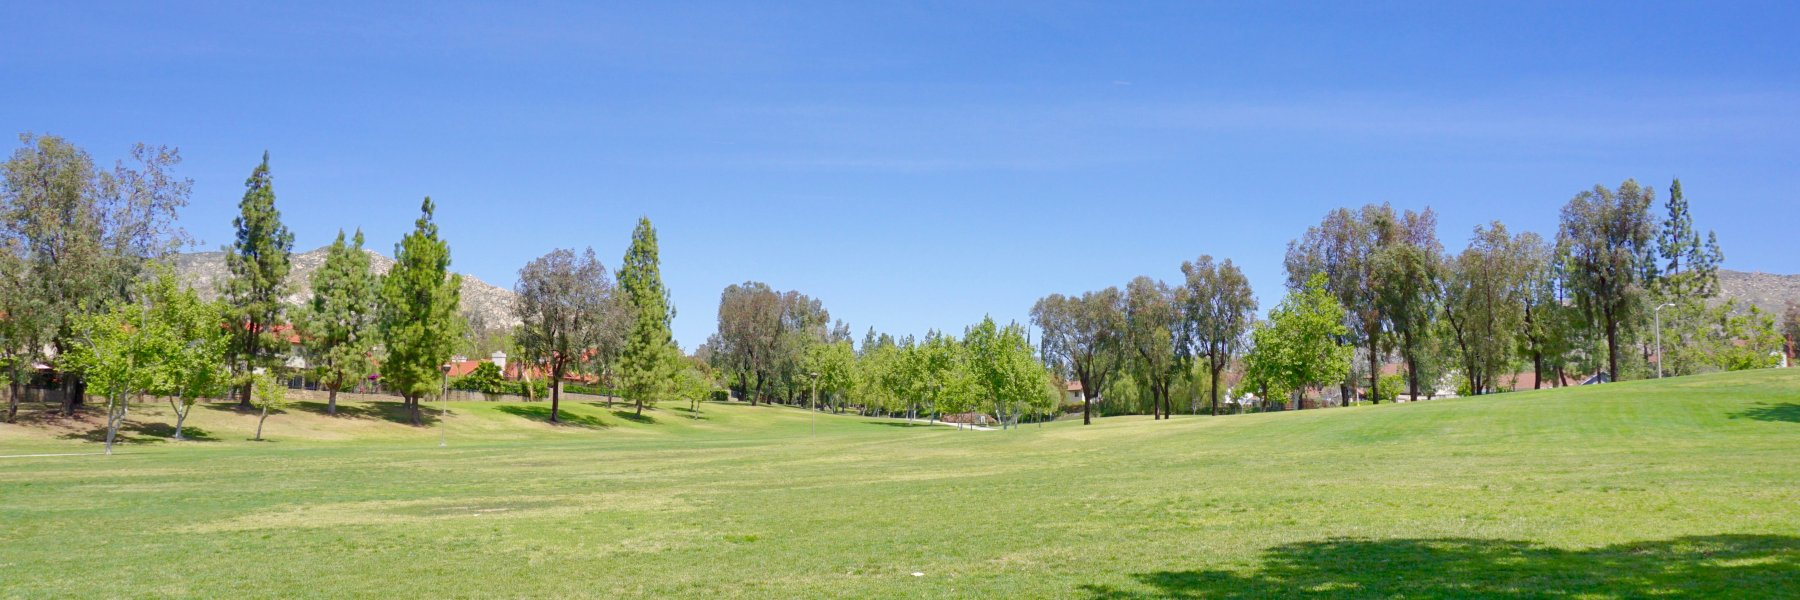 Sunnymead Ranch is a community of homes in Moreno Valley California